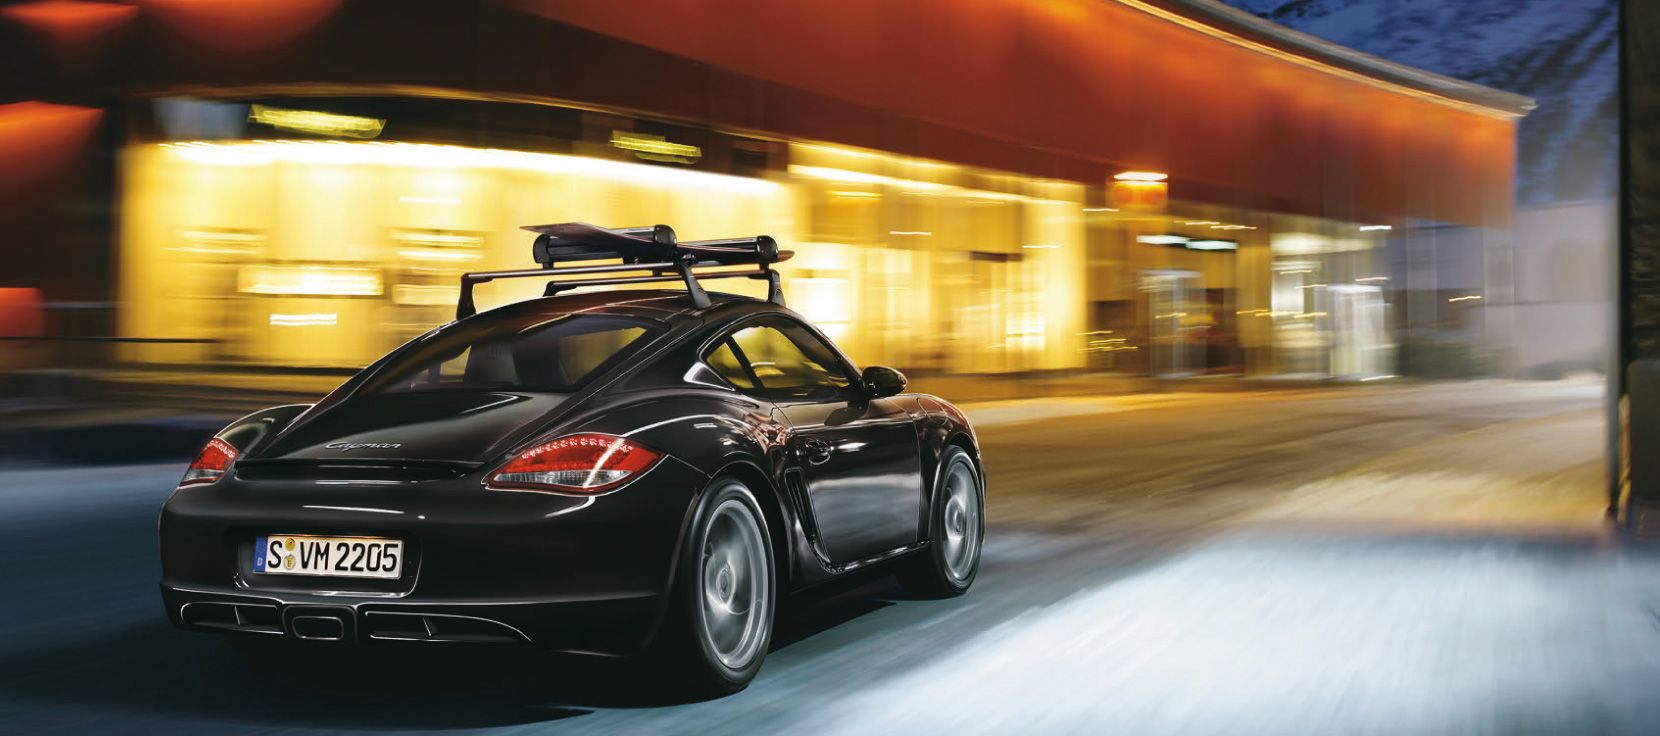 The Optional Roof Transport System Is Aerodynamically Efficient And Made Of Aluminum Its Low Weight And Uncomplicated Mec Porsche Cayman S Cayman Cayman S